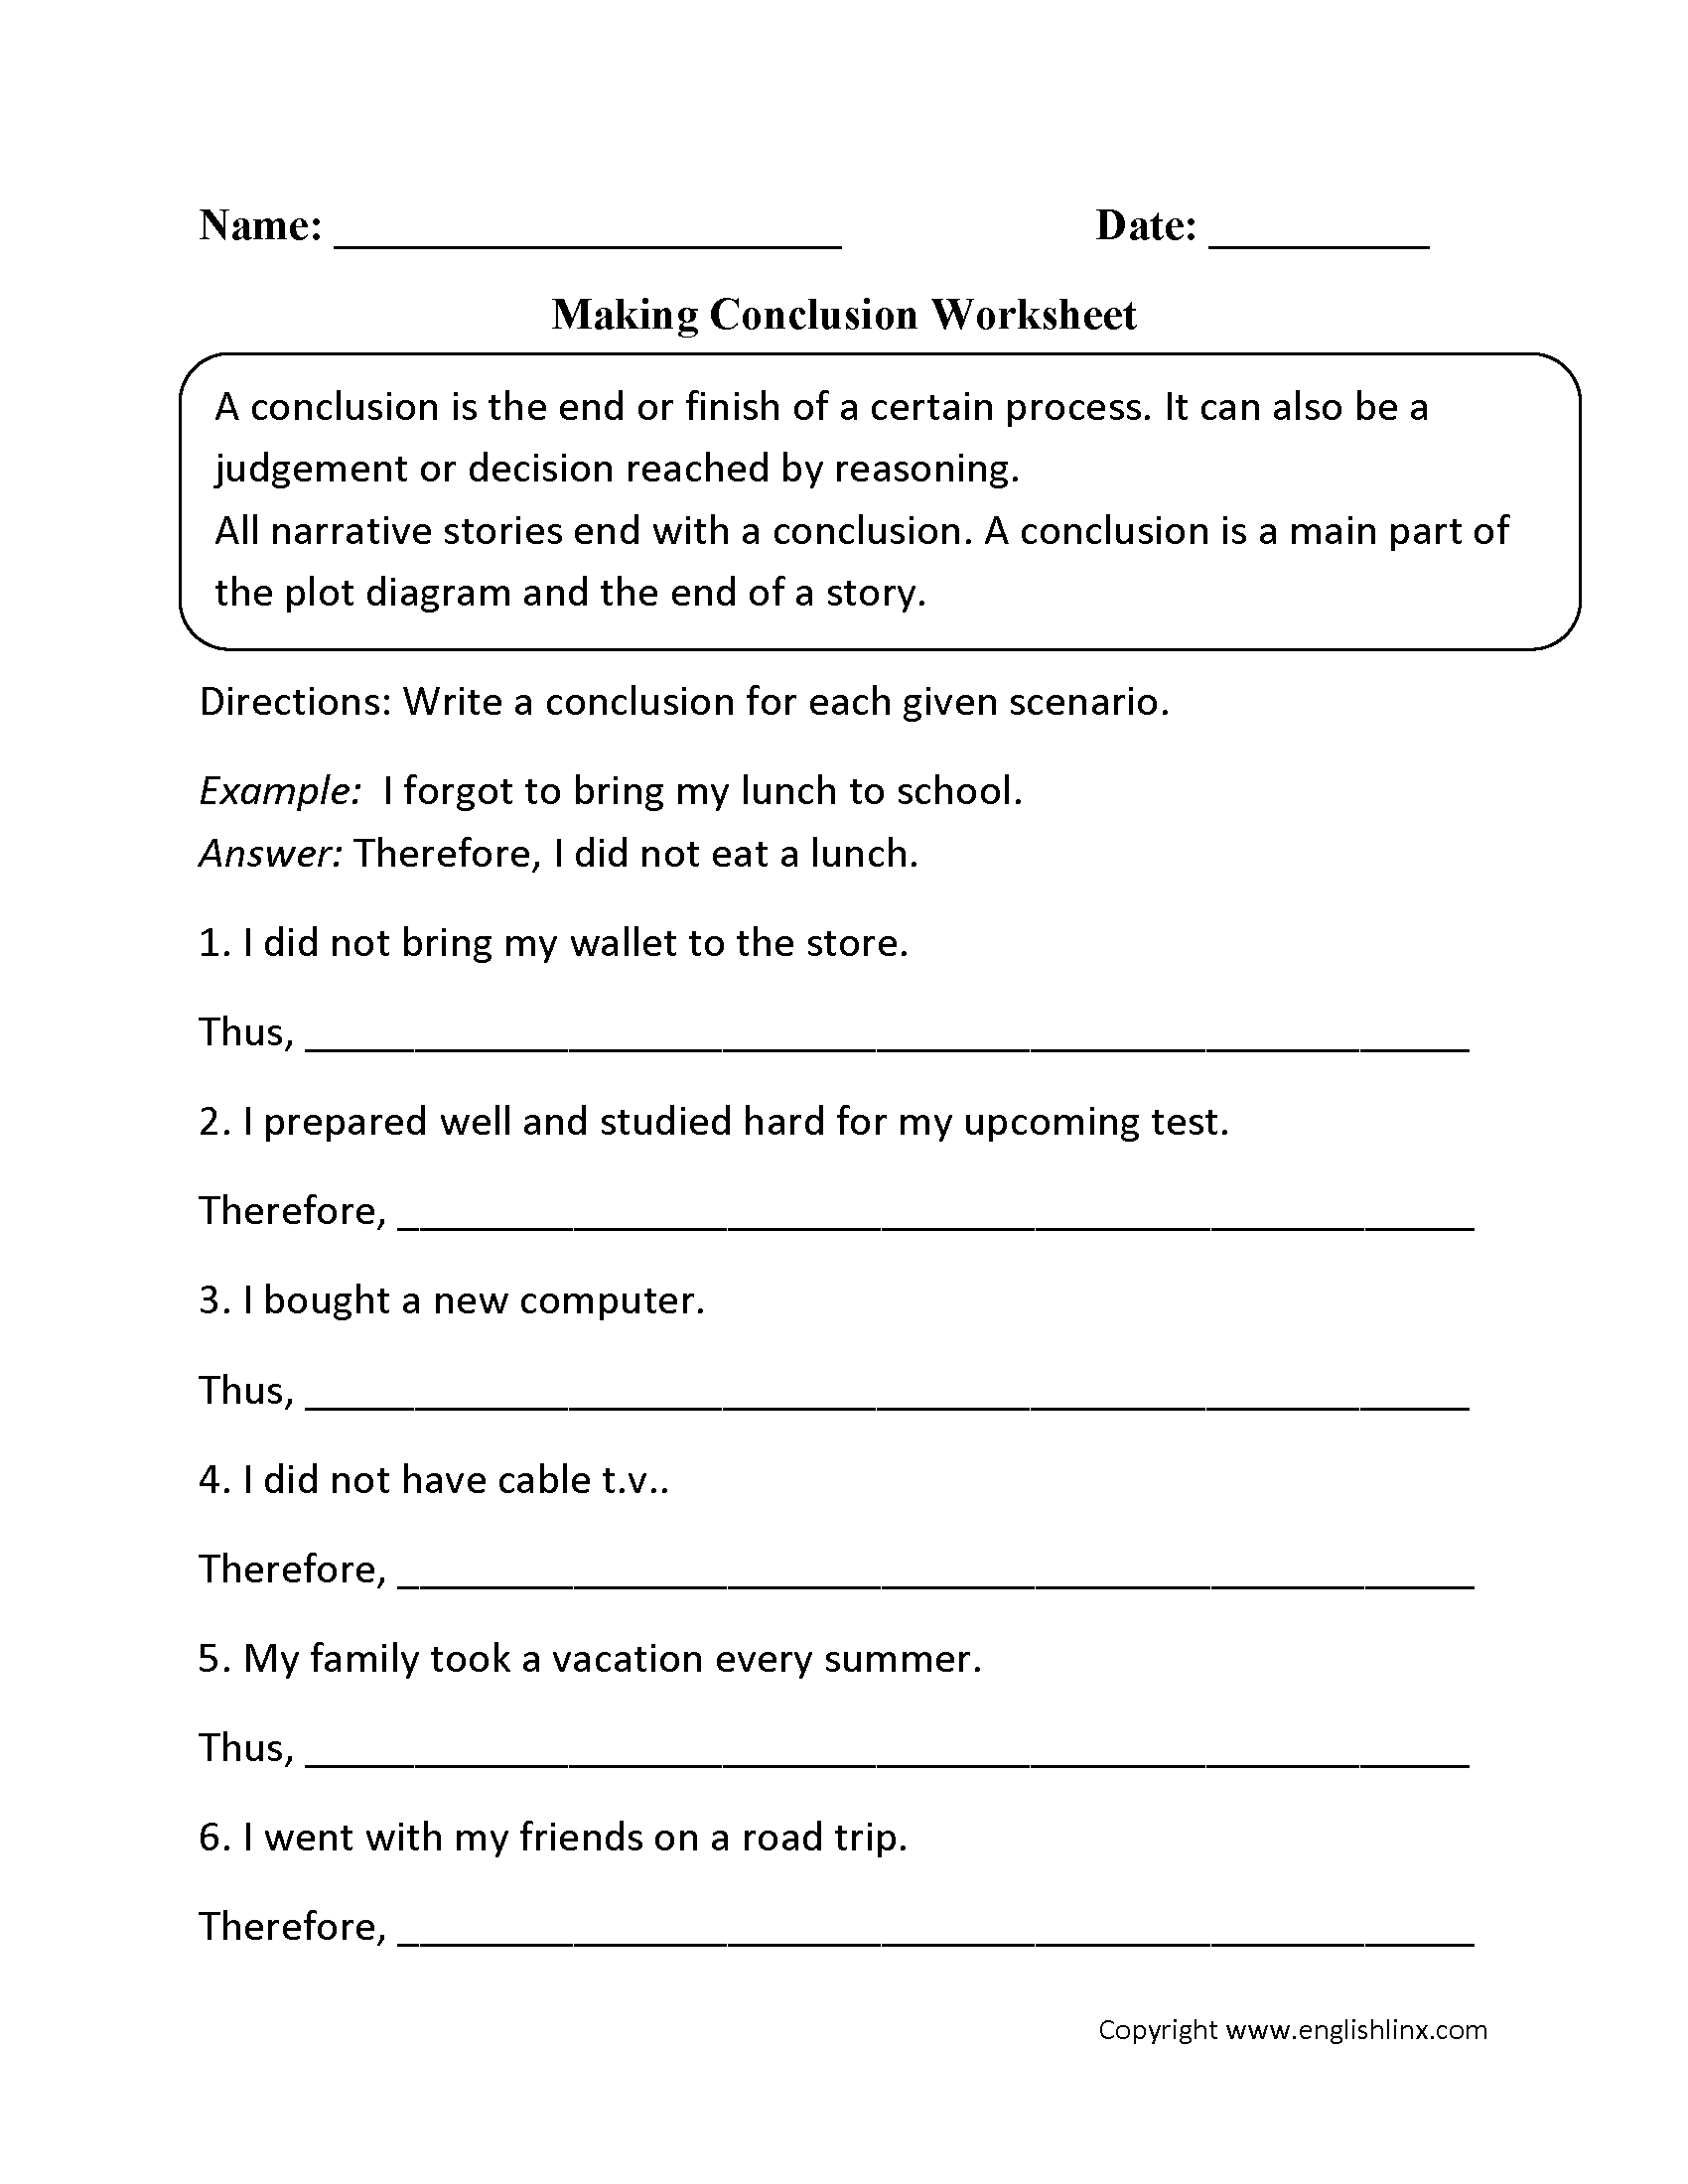 writing introductions and conclusions worksheets best research writing introductions and conclusions worksheets